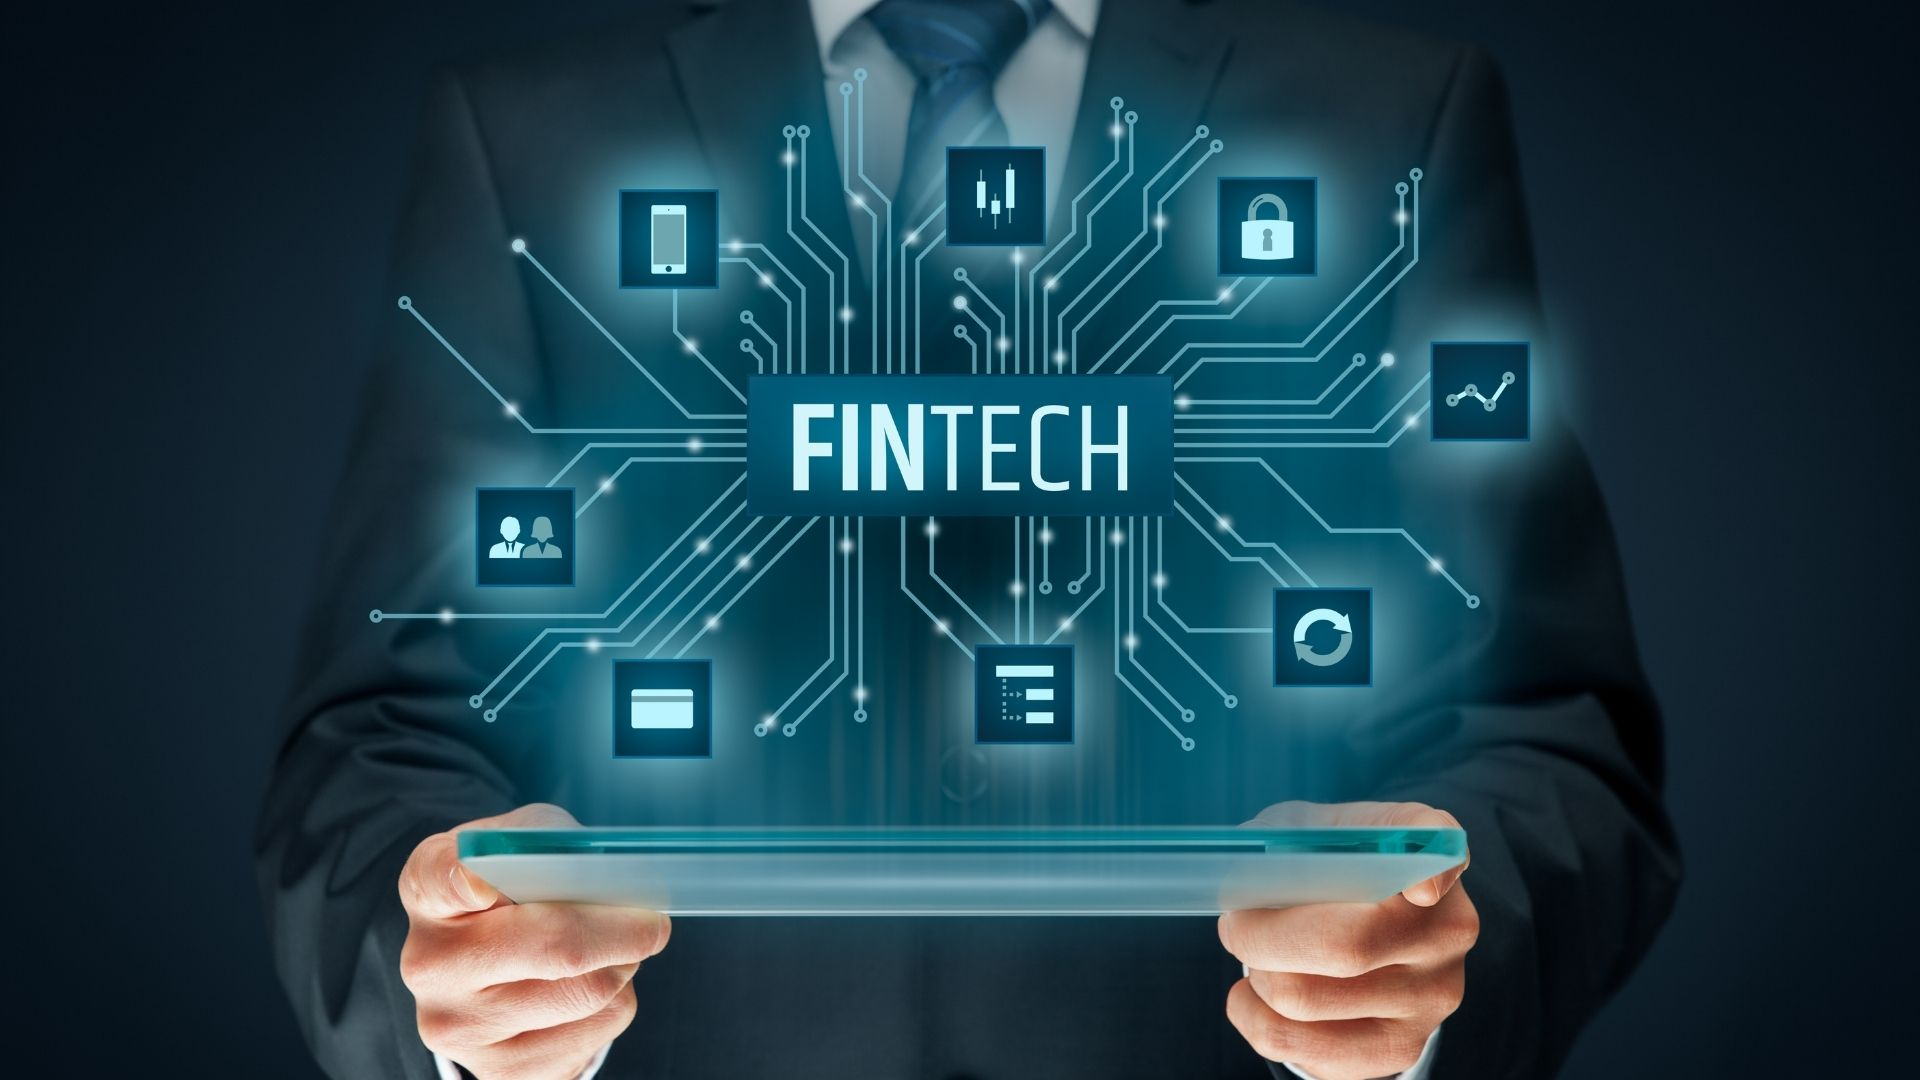 Tackling Covid-19 and Brexit - fintech innovation is key 35